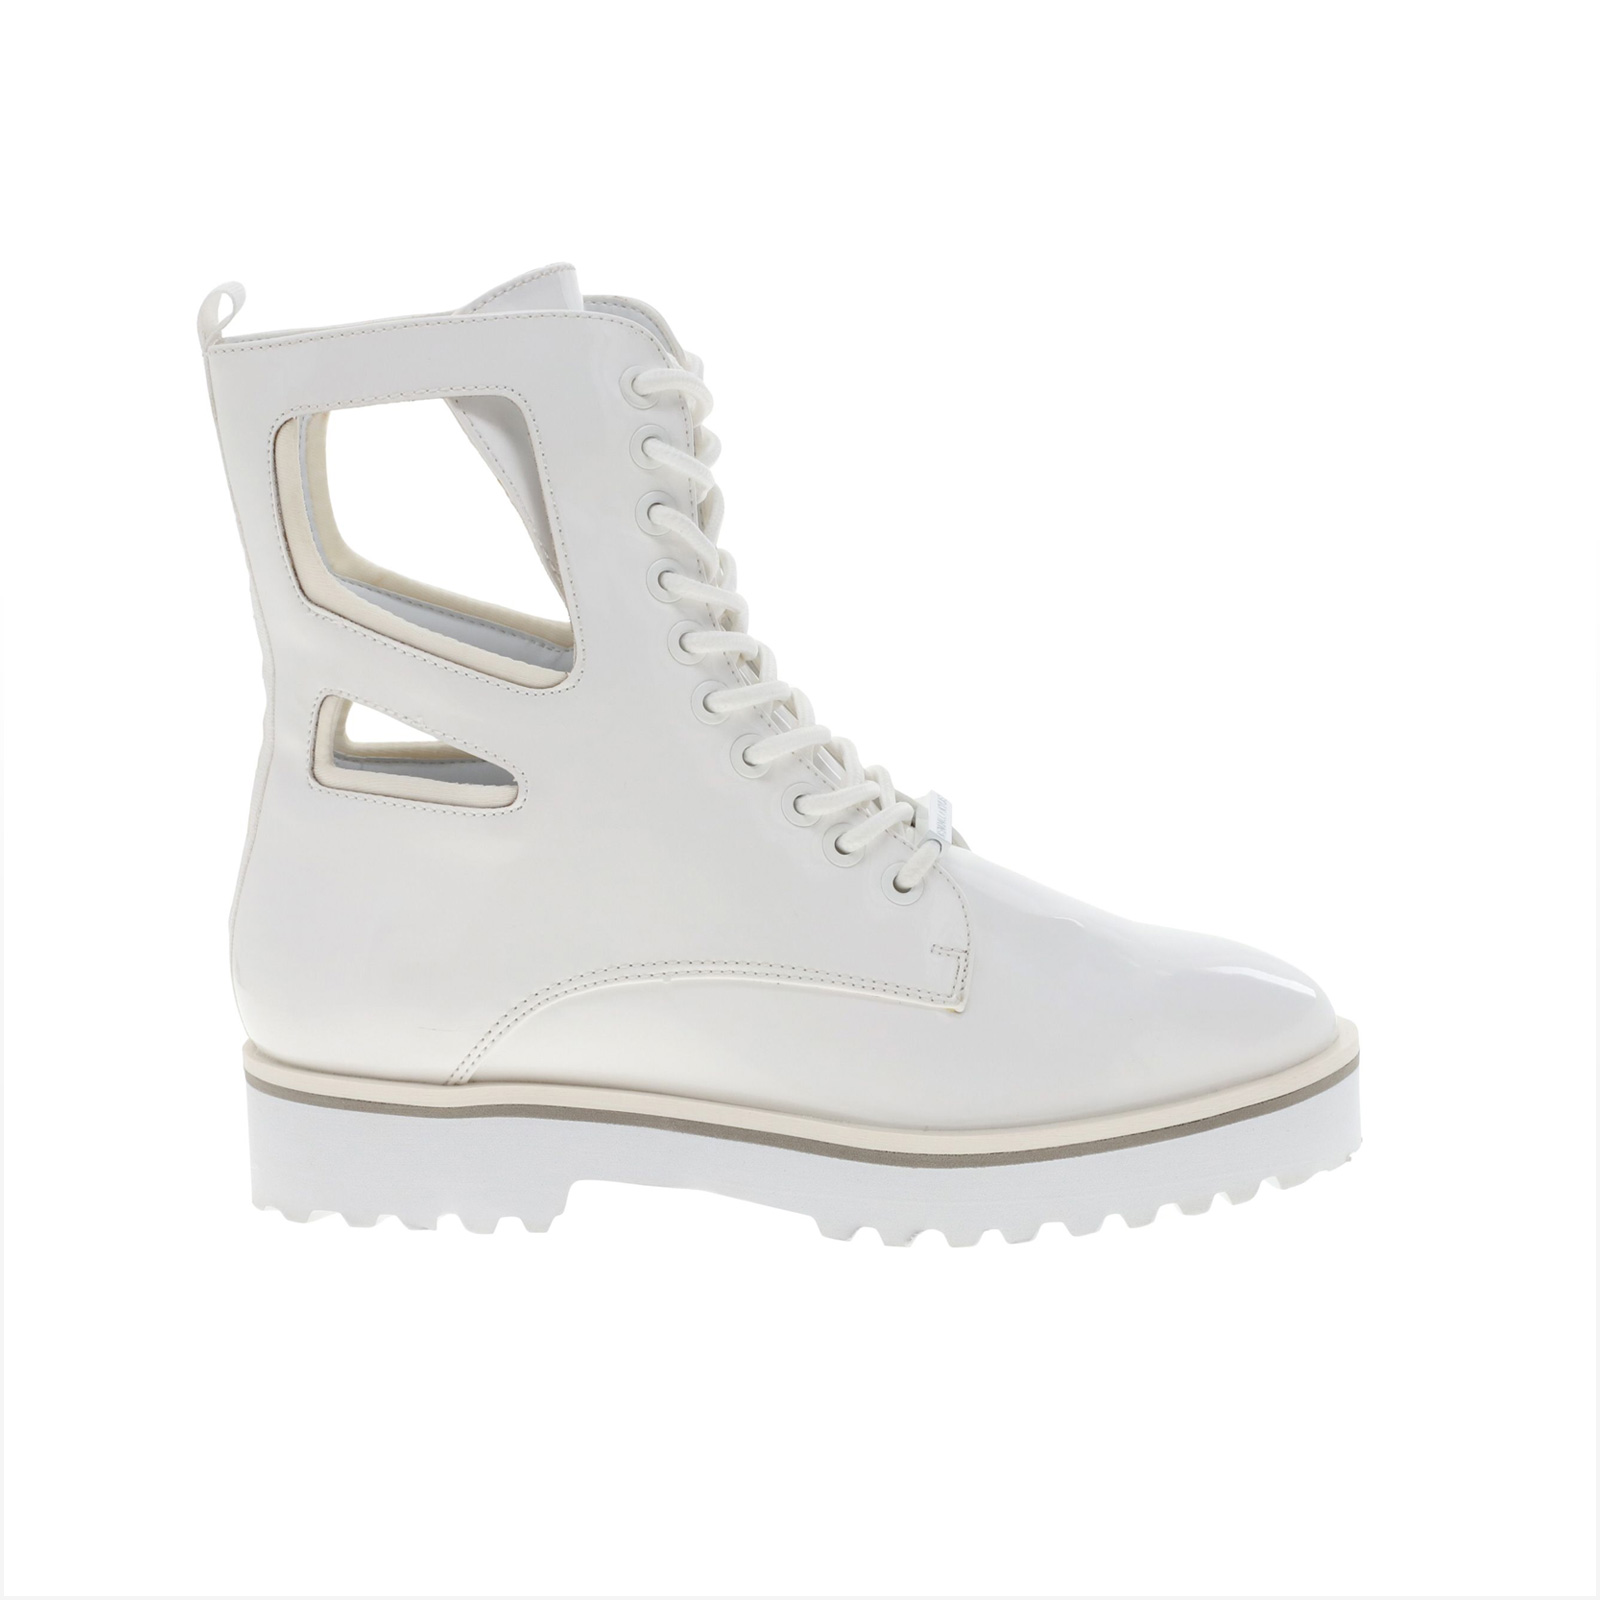 Kendall and Kylie - K&K SHOES KKLANGMORE 74144 WHITE VEGAN PATENT/LYCRA - TYPE